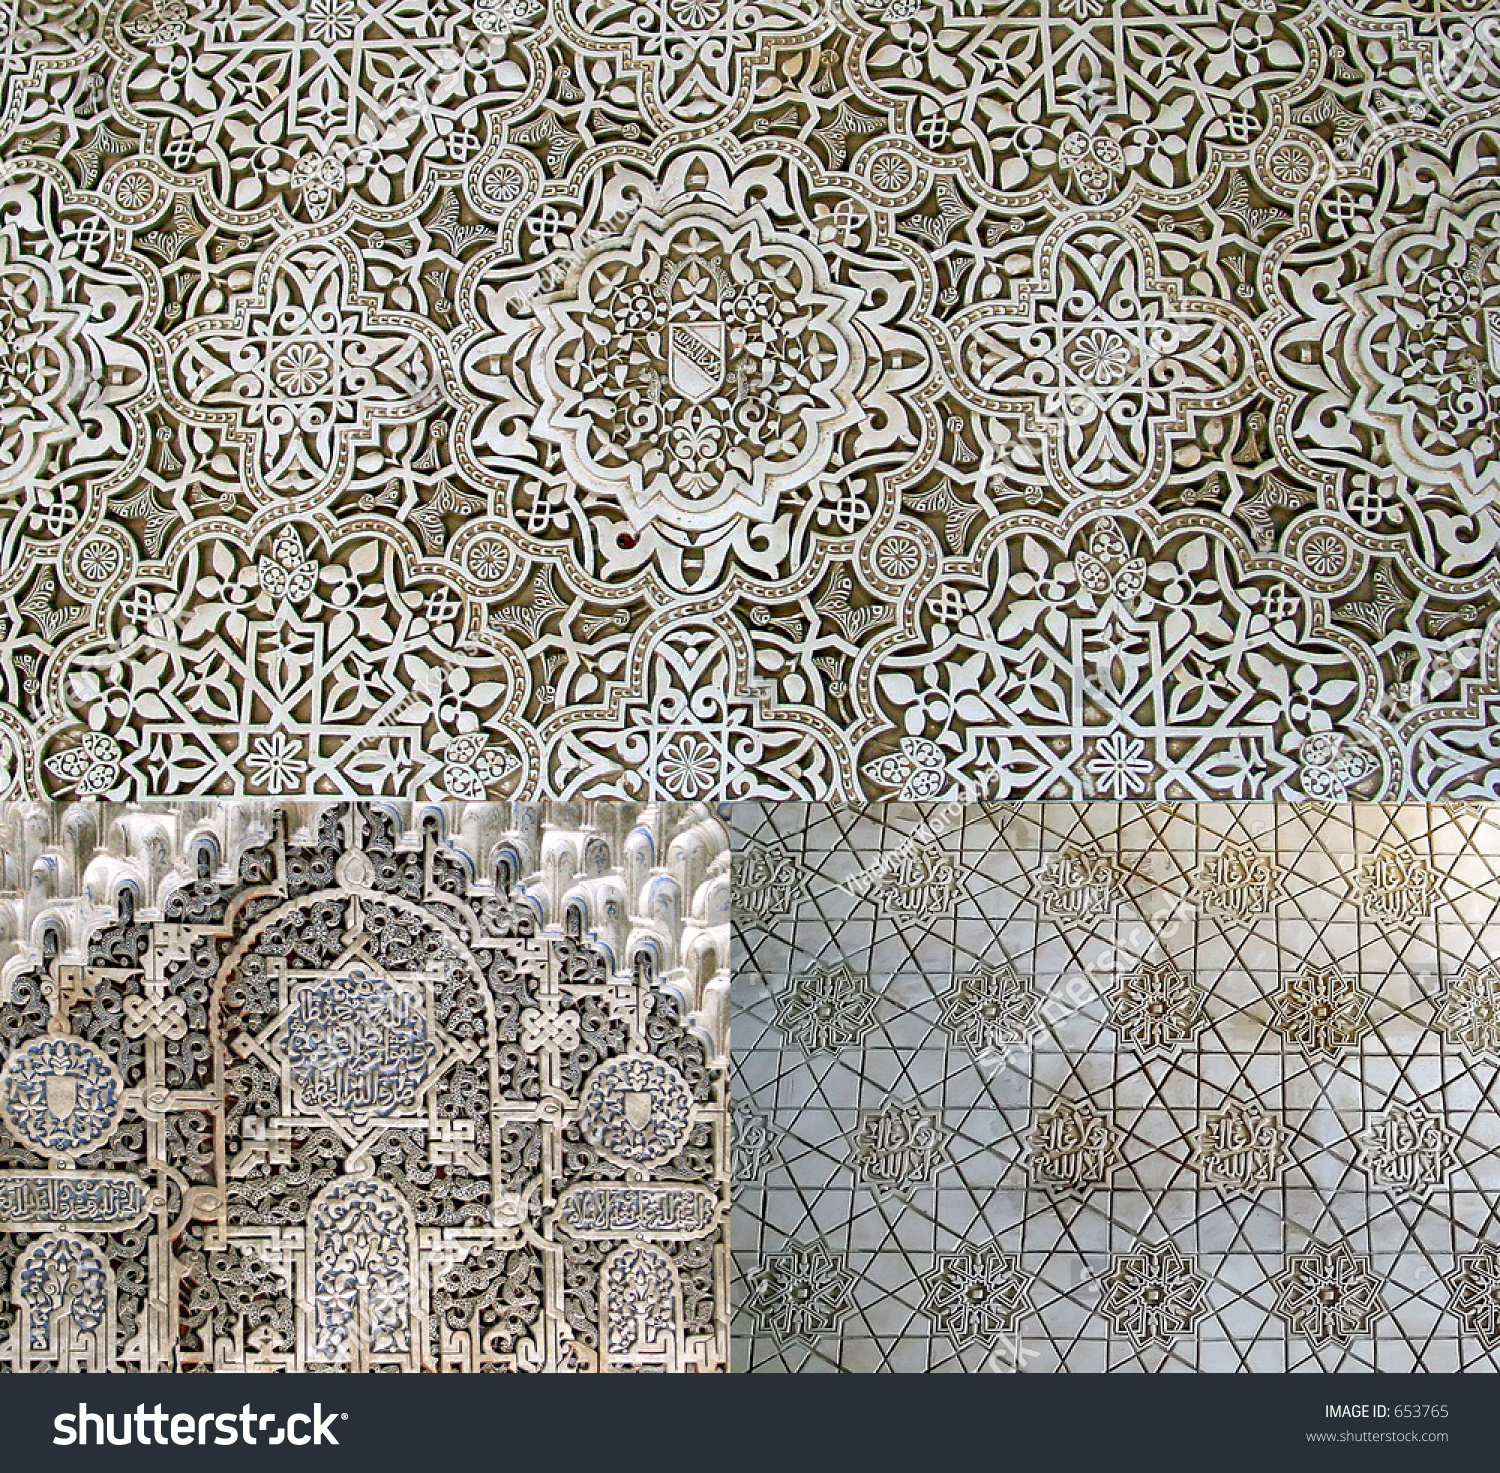 Fragment of decor in the alhambra palace in granada spain for Alhambra decoration